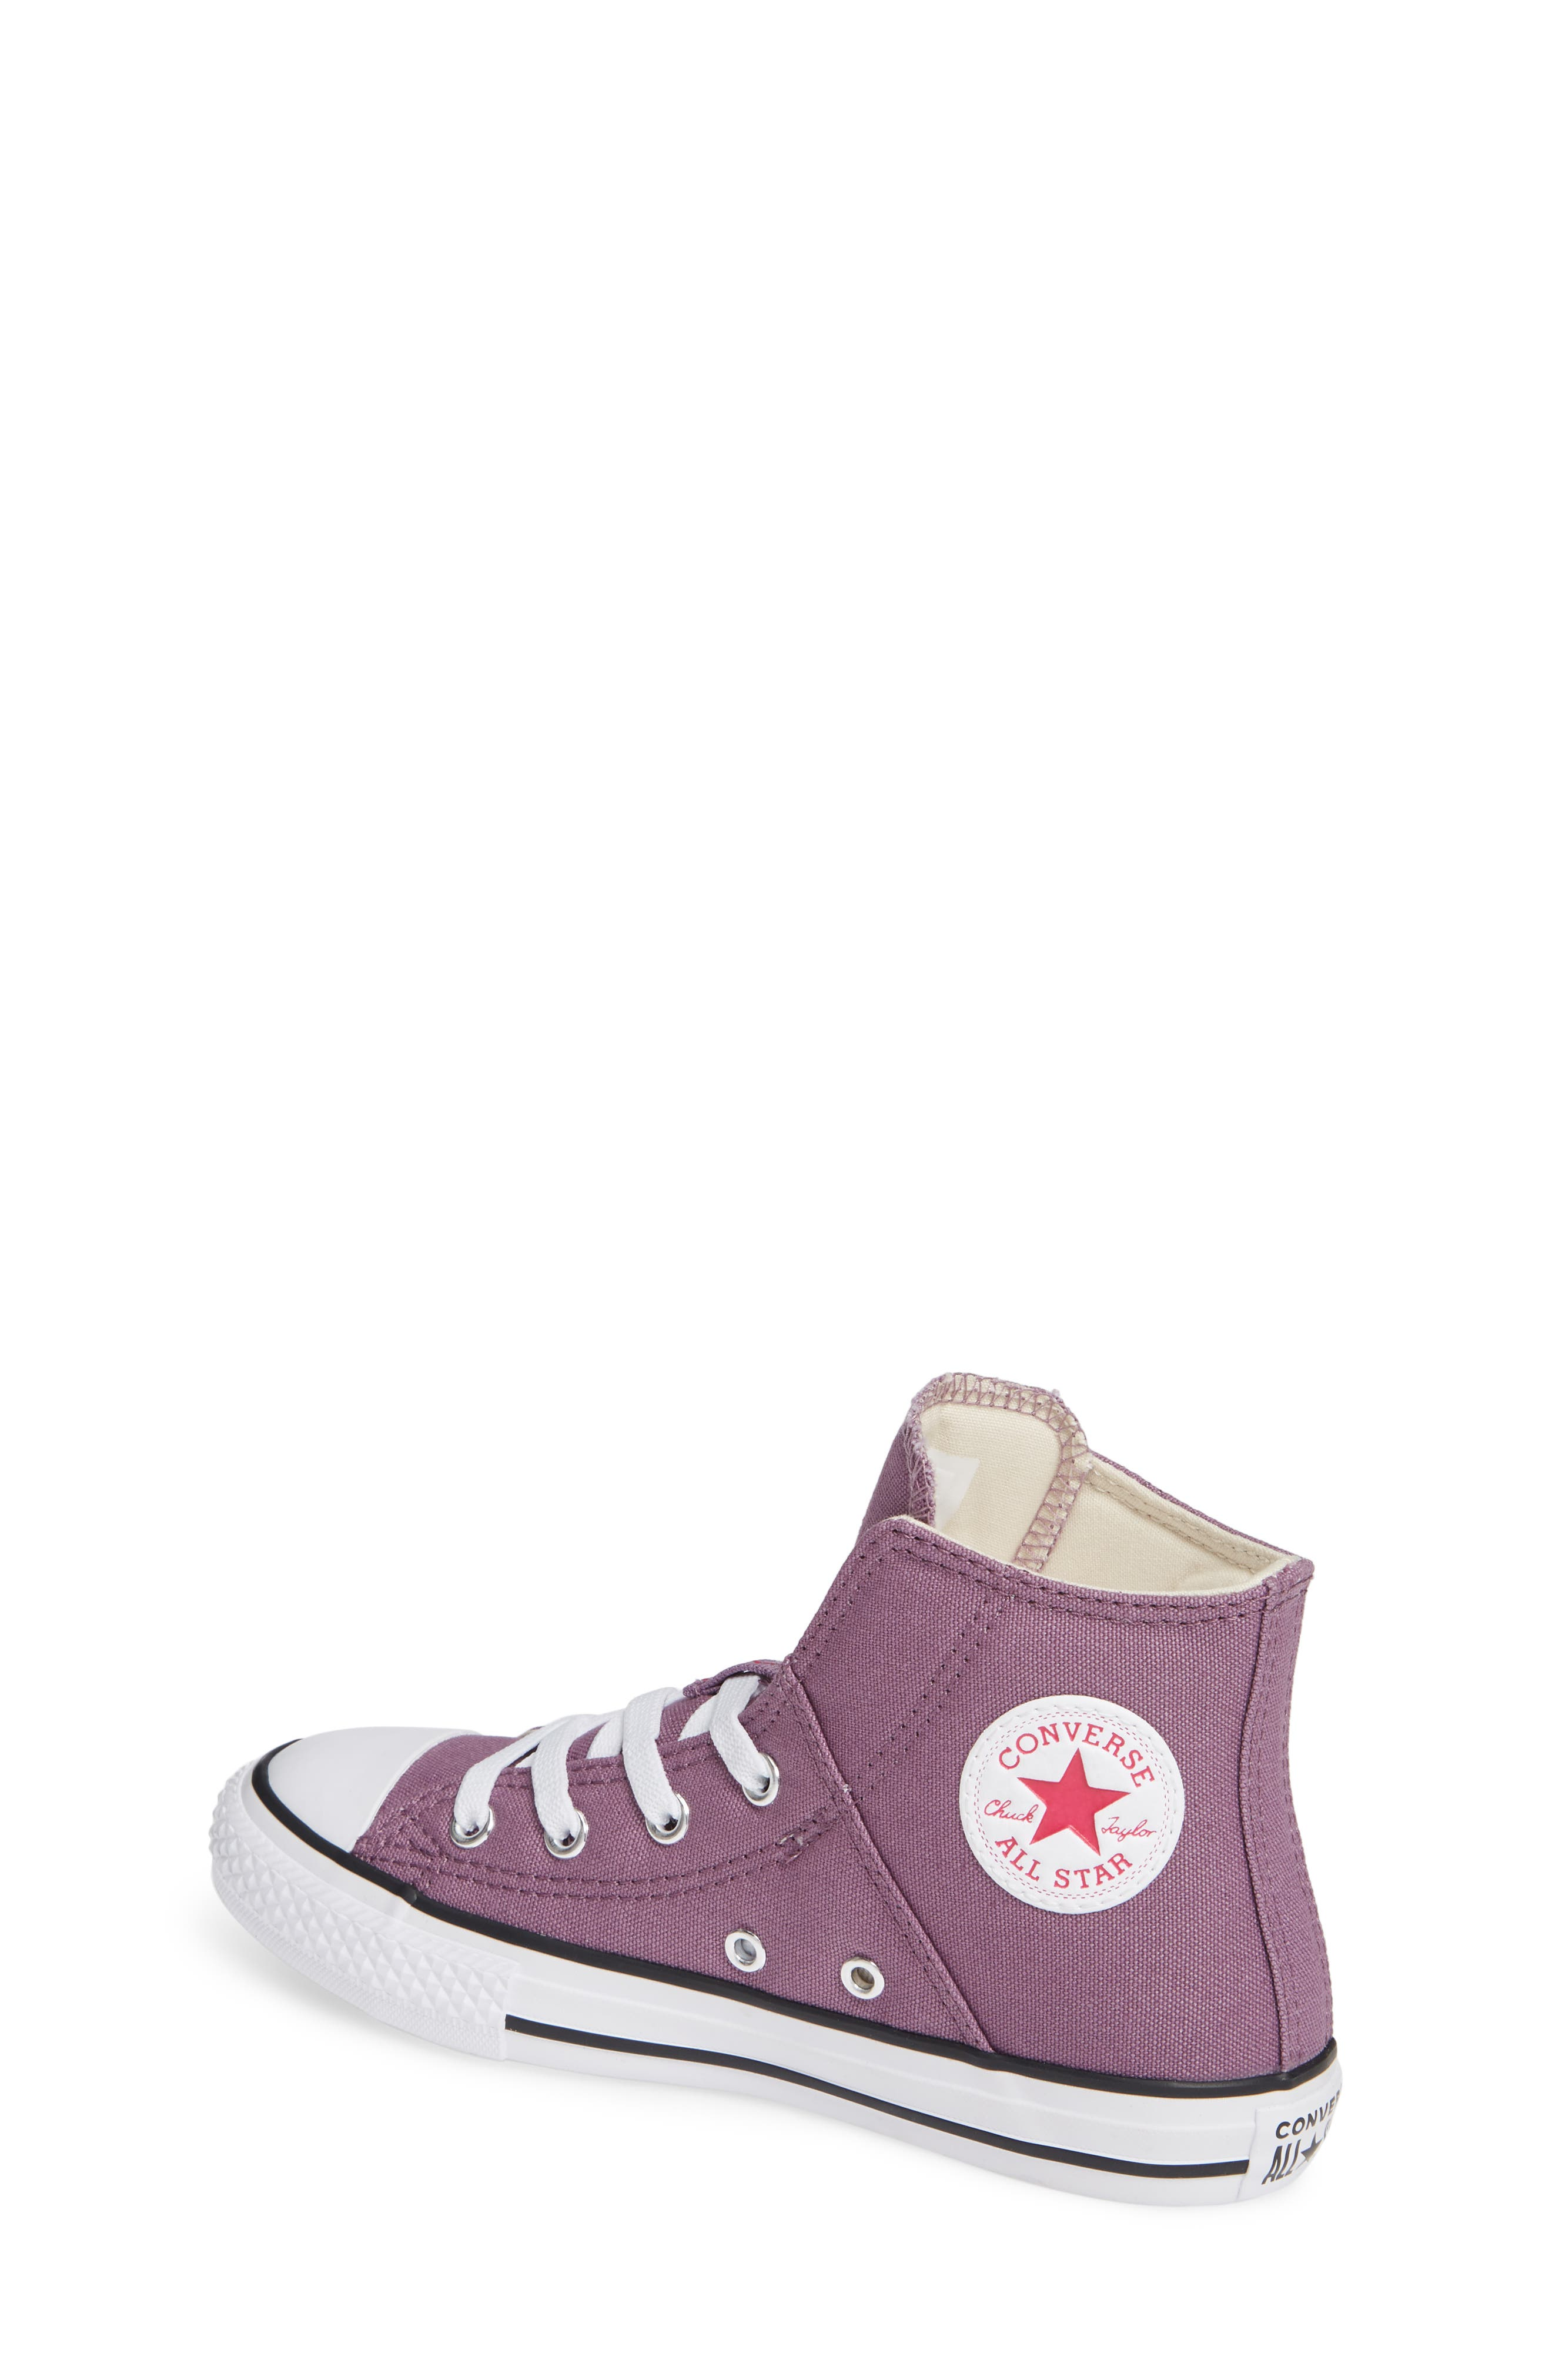 Chuck Taylor<sup>®</sup> All Star<sup>®</sup> Pull Zip High Top Sneaker,                             Alternate thumbnail 2, color,                             Violet Dust